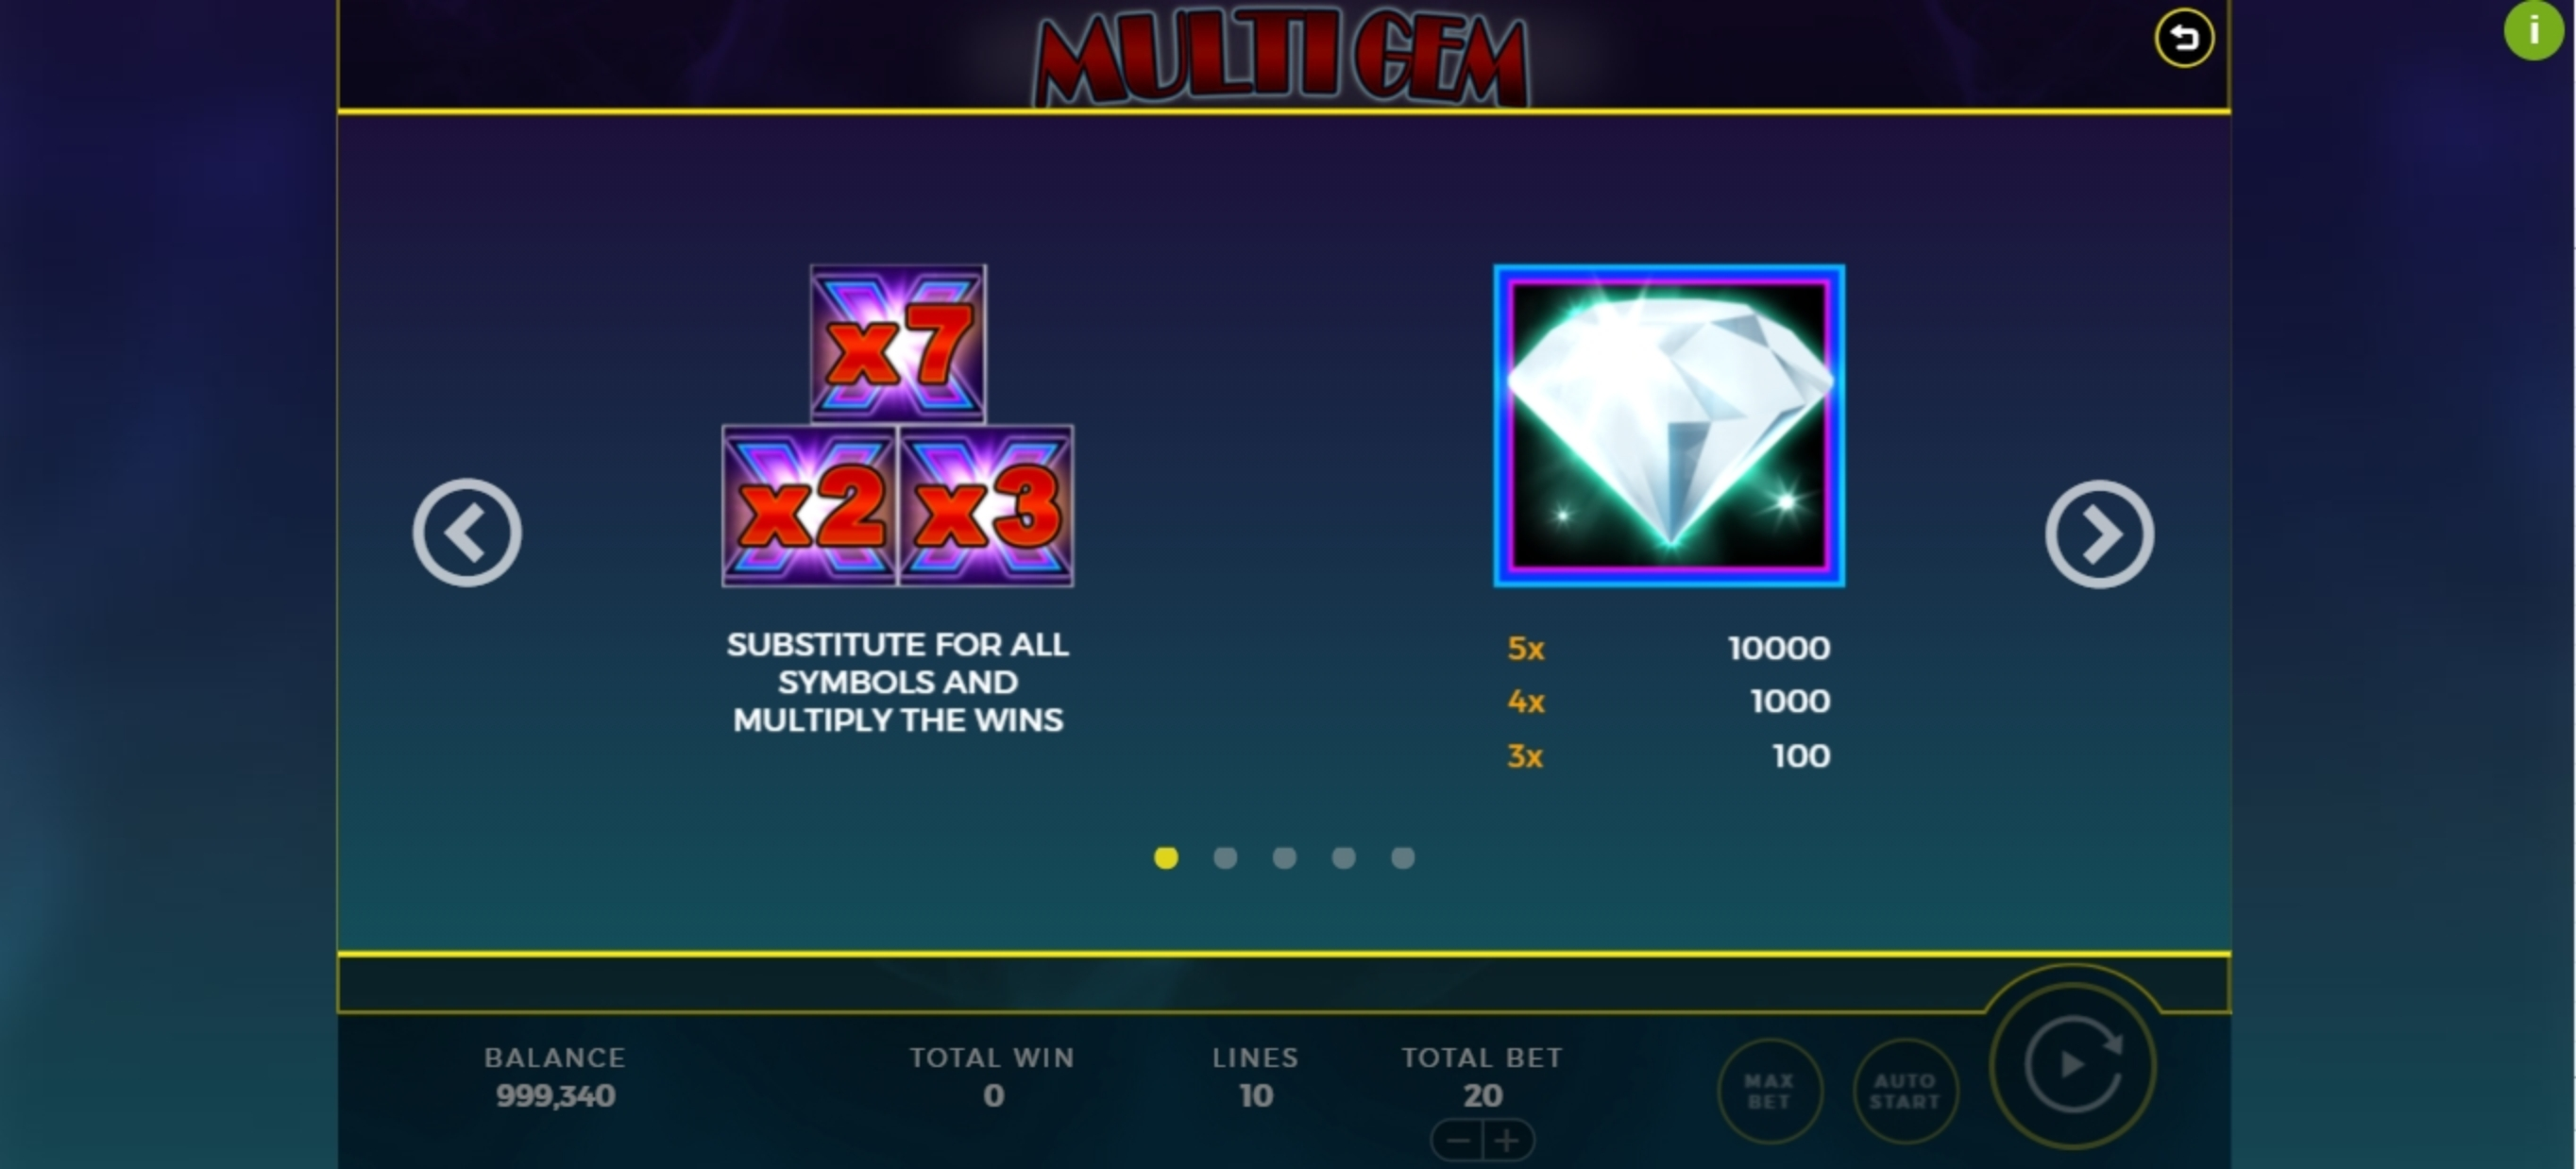 Info of Multi Gem Slot Game by Bally Wulff